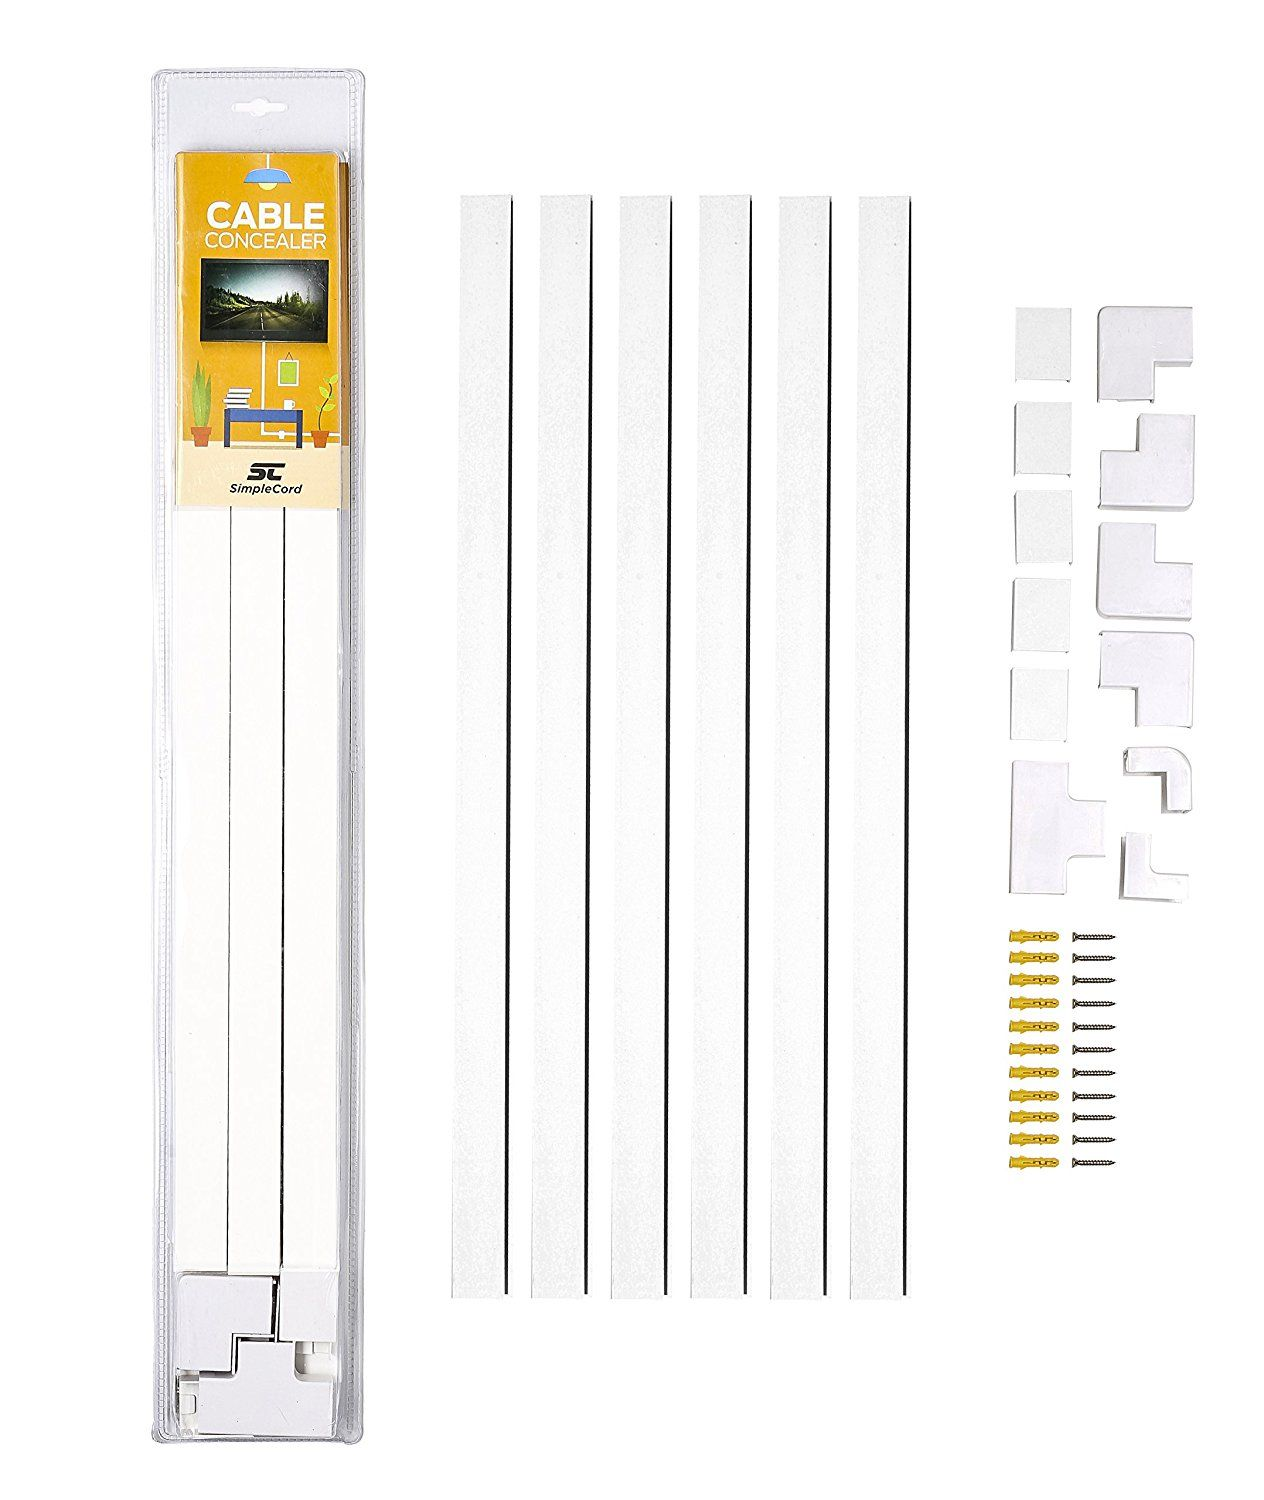 Cable Concealer On-Wall Cord Cover Raceway Kit Hide Wire Cables Organizer System